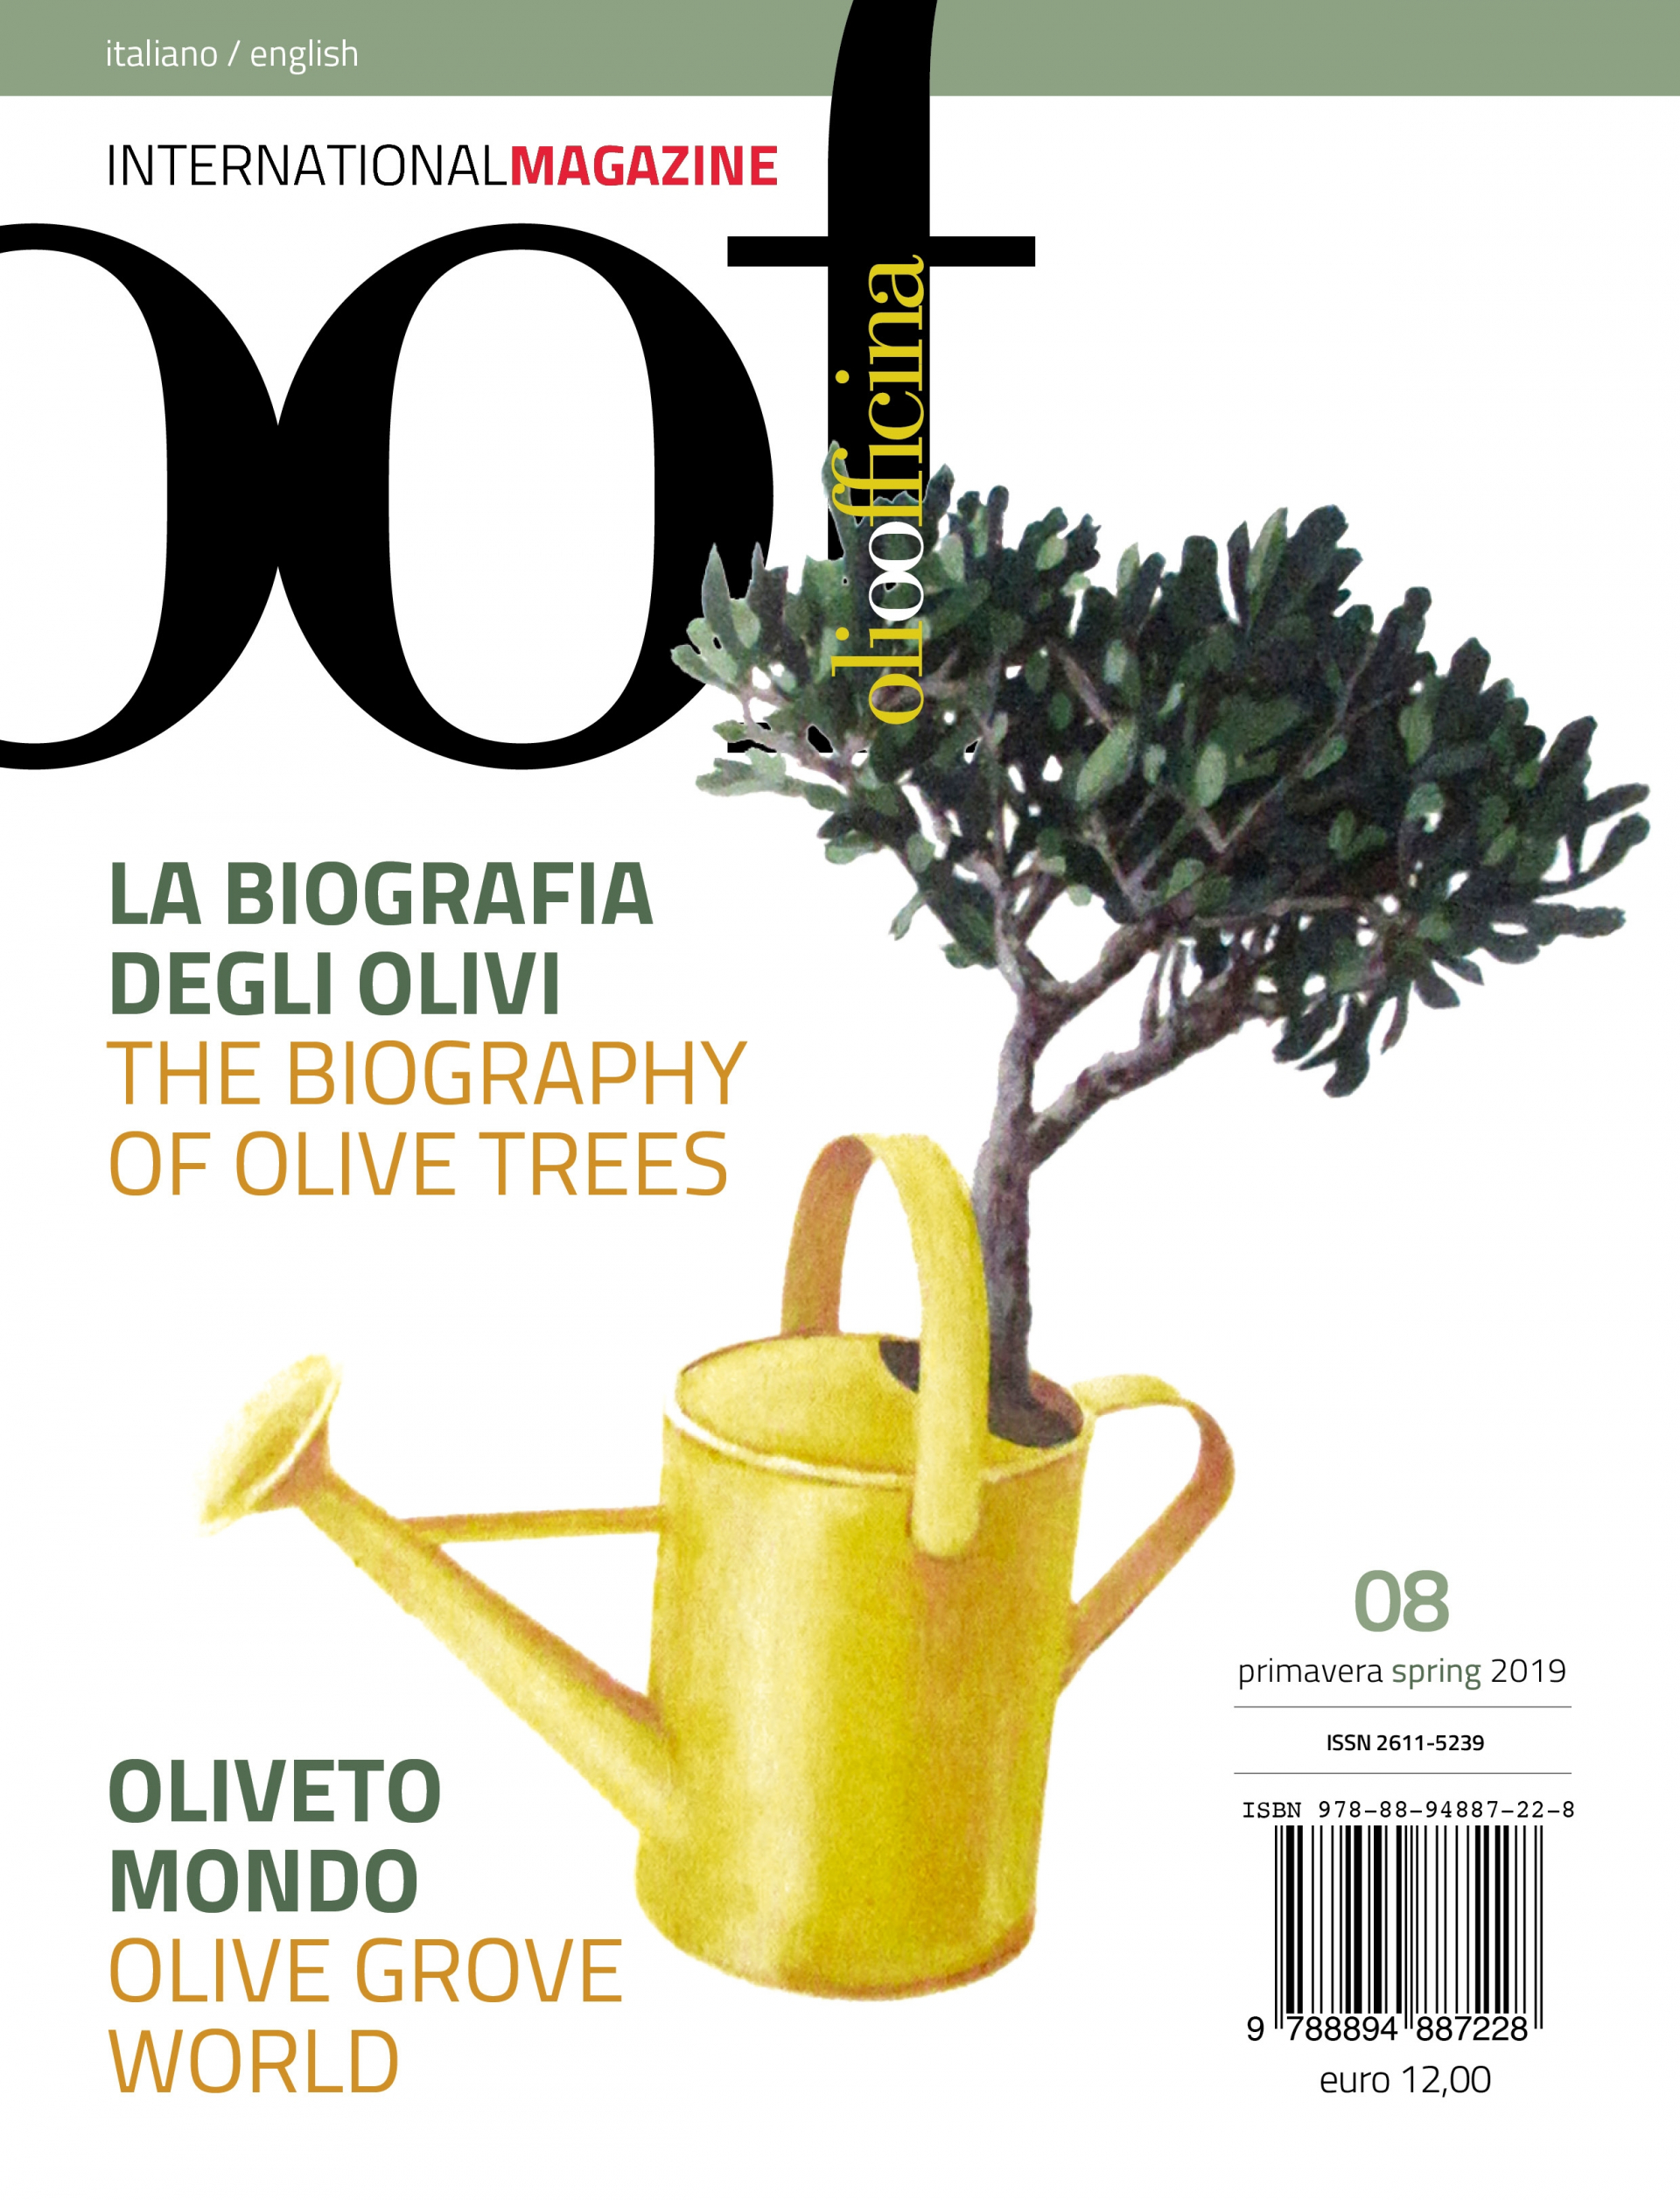 The biography of olive trees